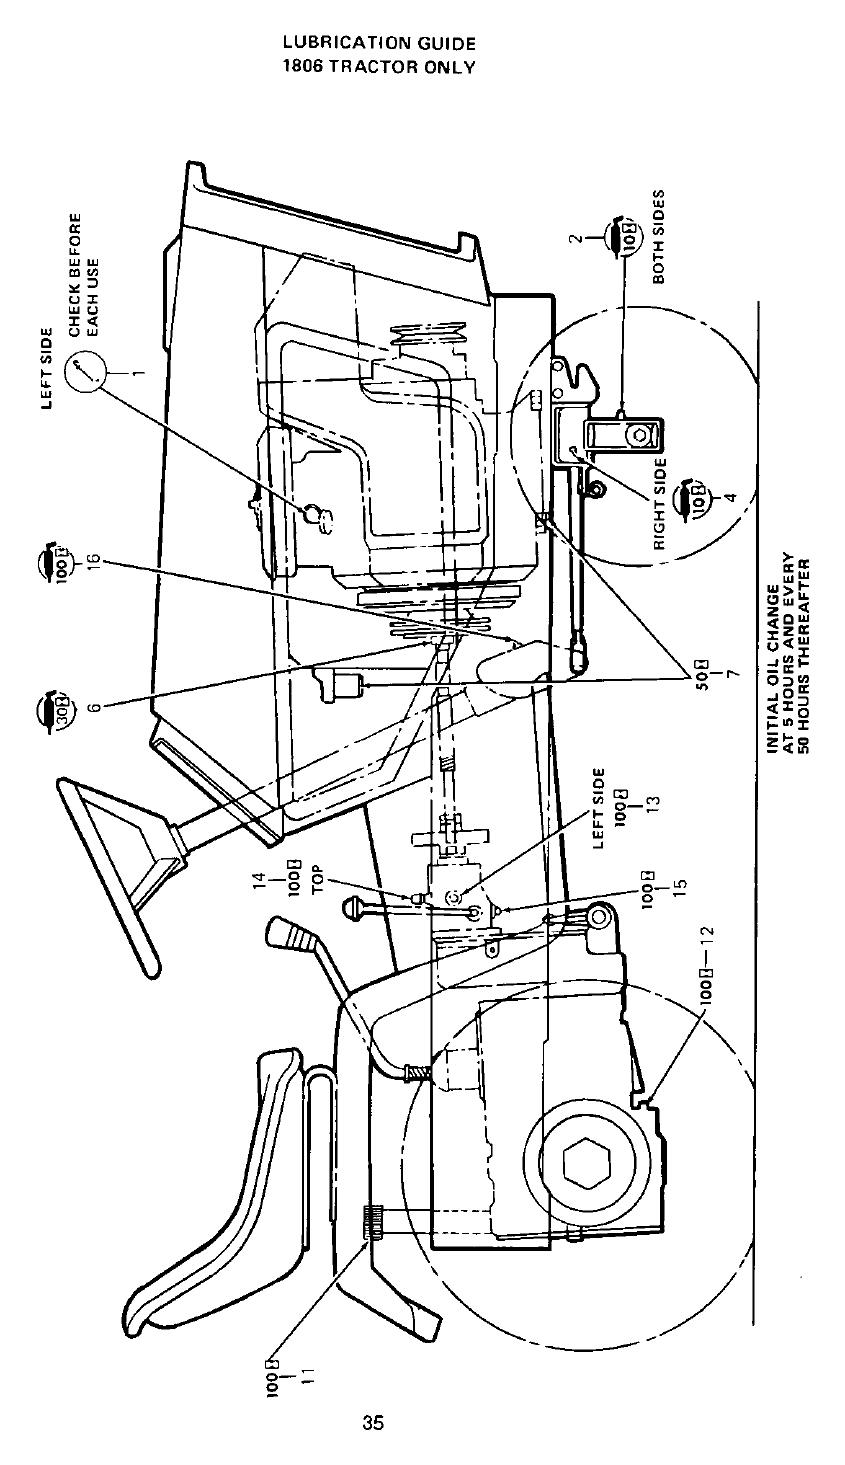 Page 35 of Cub Cadet Lawn Mower 1811 User Guide